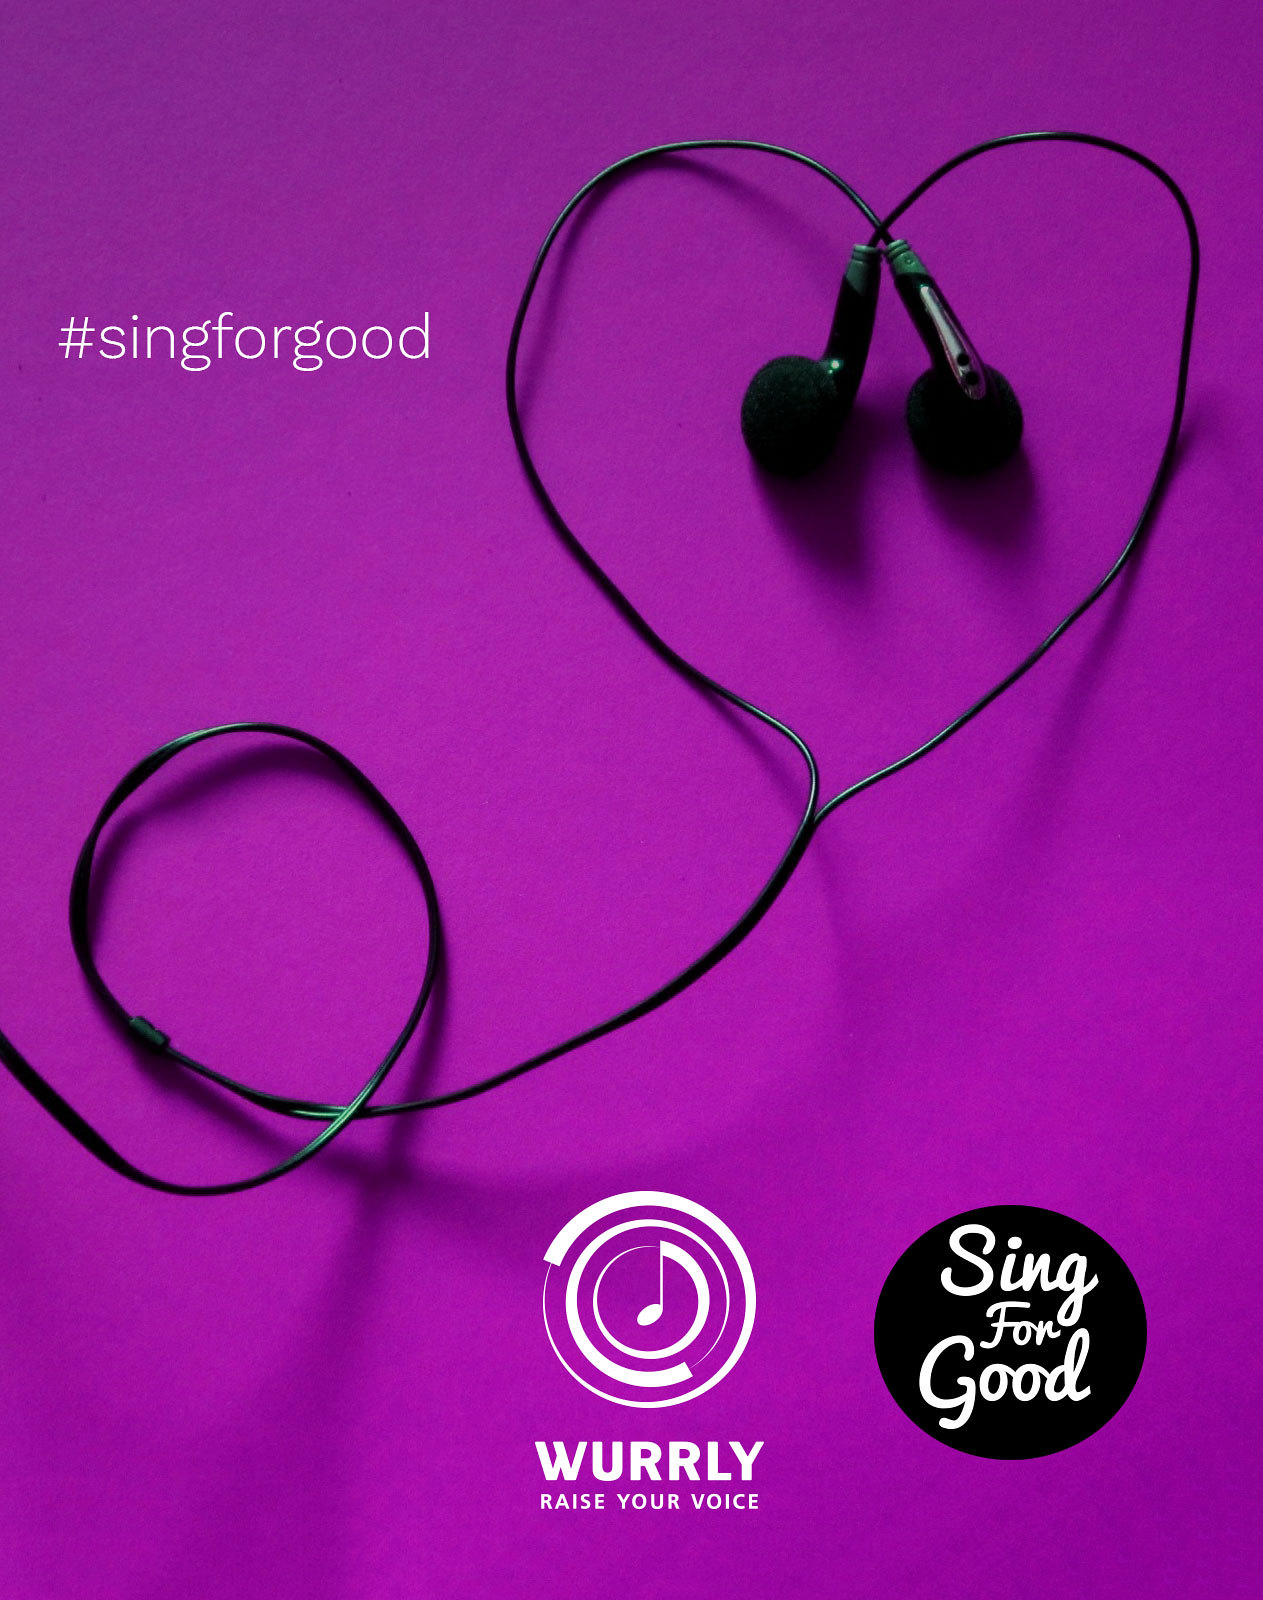 Wurrly and Sing for Good banner with headphones in a love heart shape